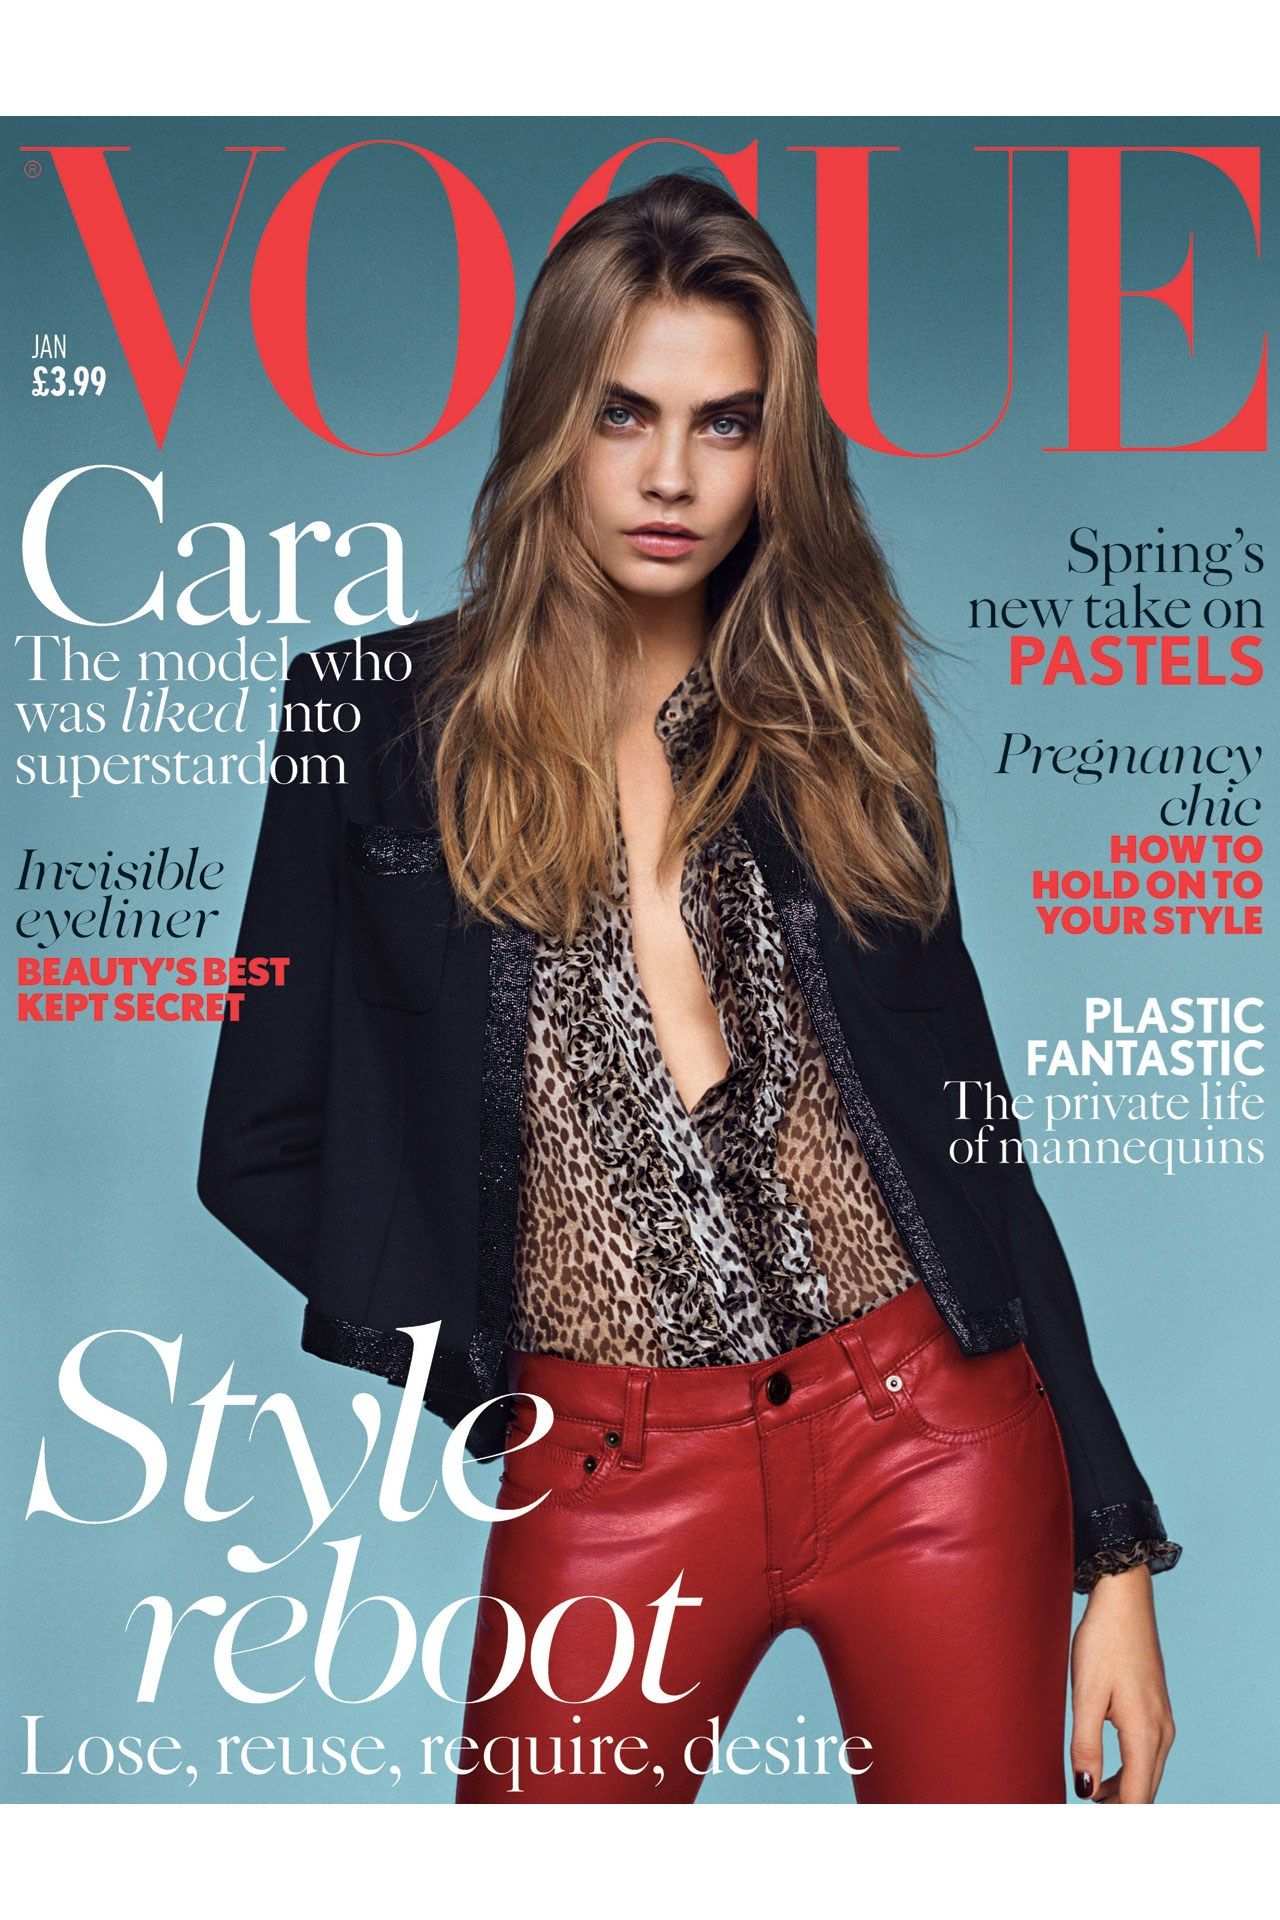 f3d83bf49b34f Start The Vogue Year With Cara